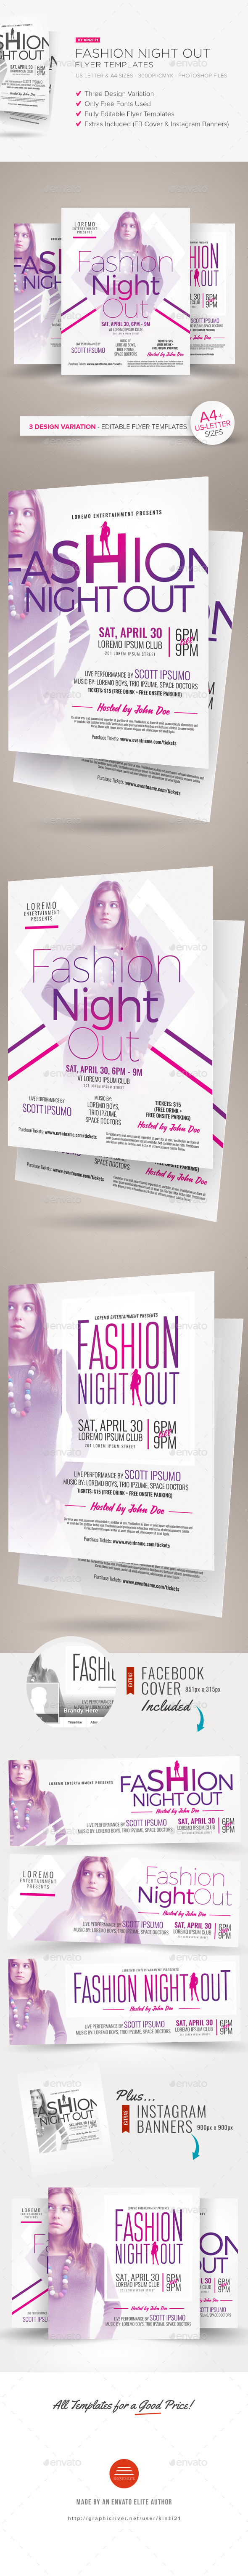 Fashion Night Out Flyer Templates - Clubs & Parties Events